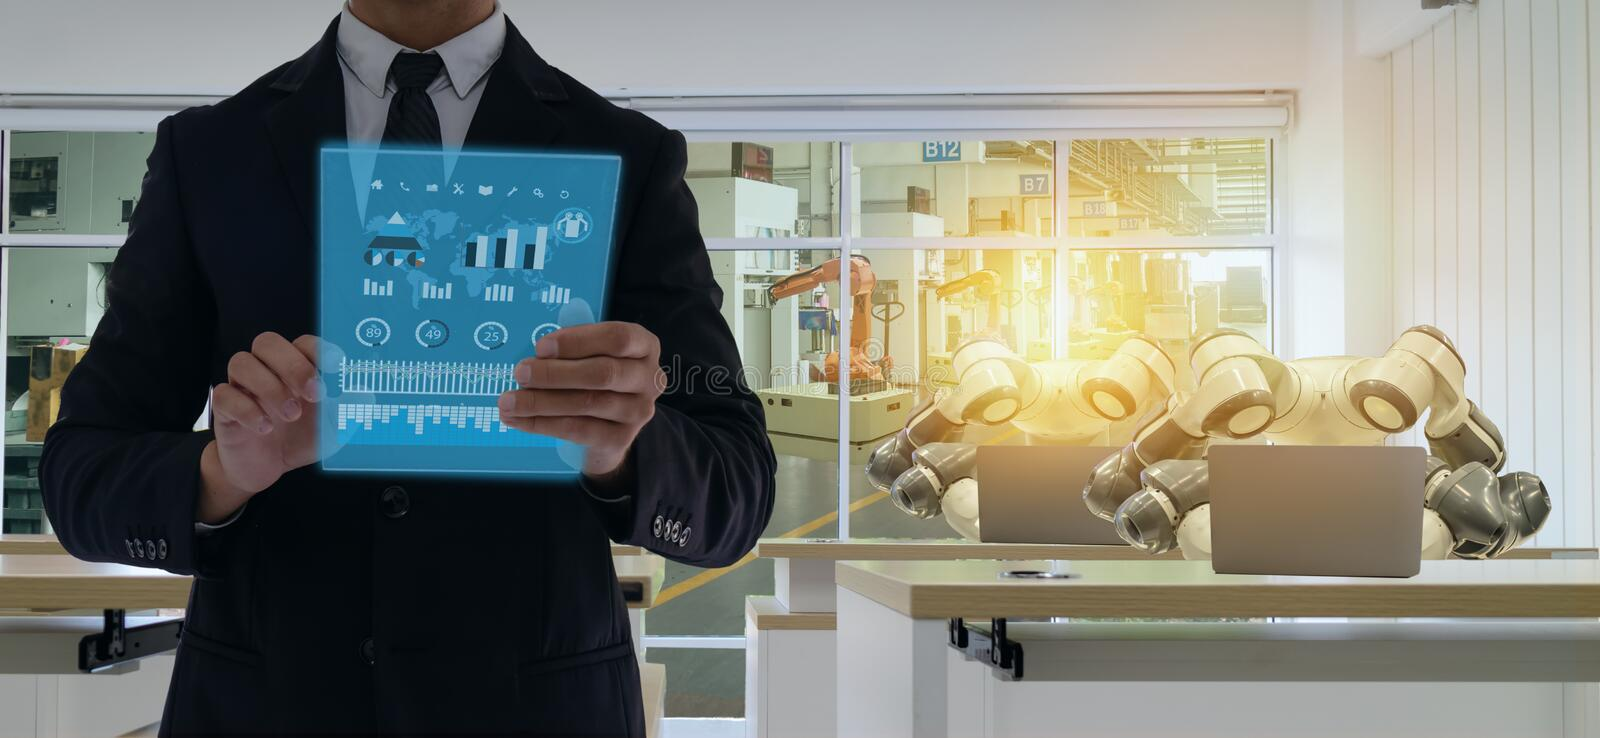 Iot smart factory in industry 4.0 robot technology concept, engineer , business man using futuristic tablet to control ,monitor, m stock photos